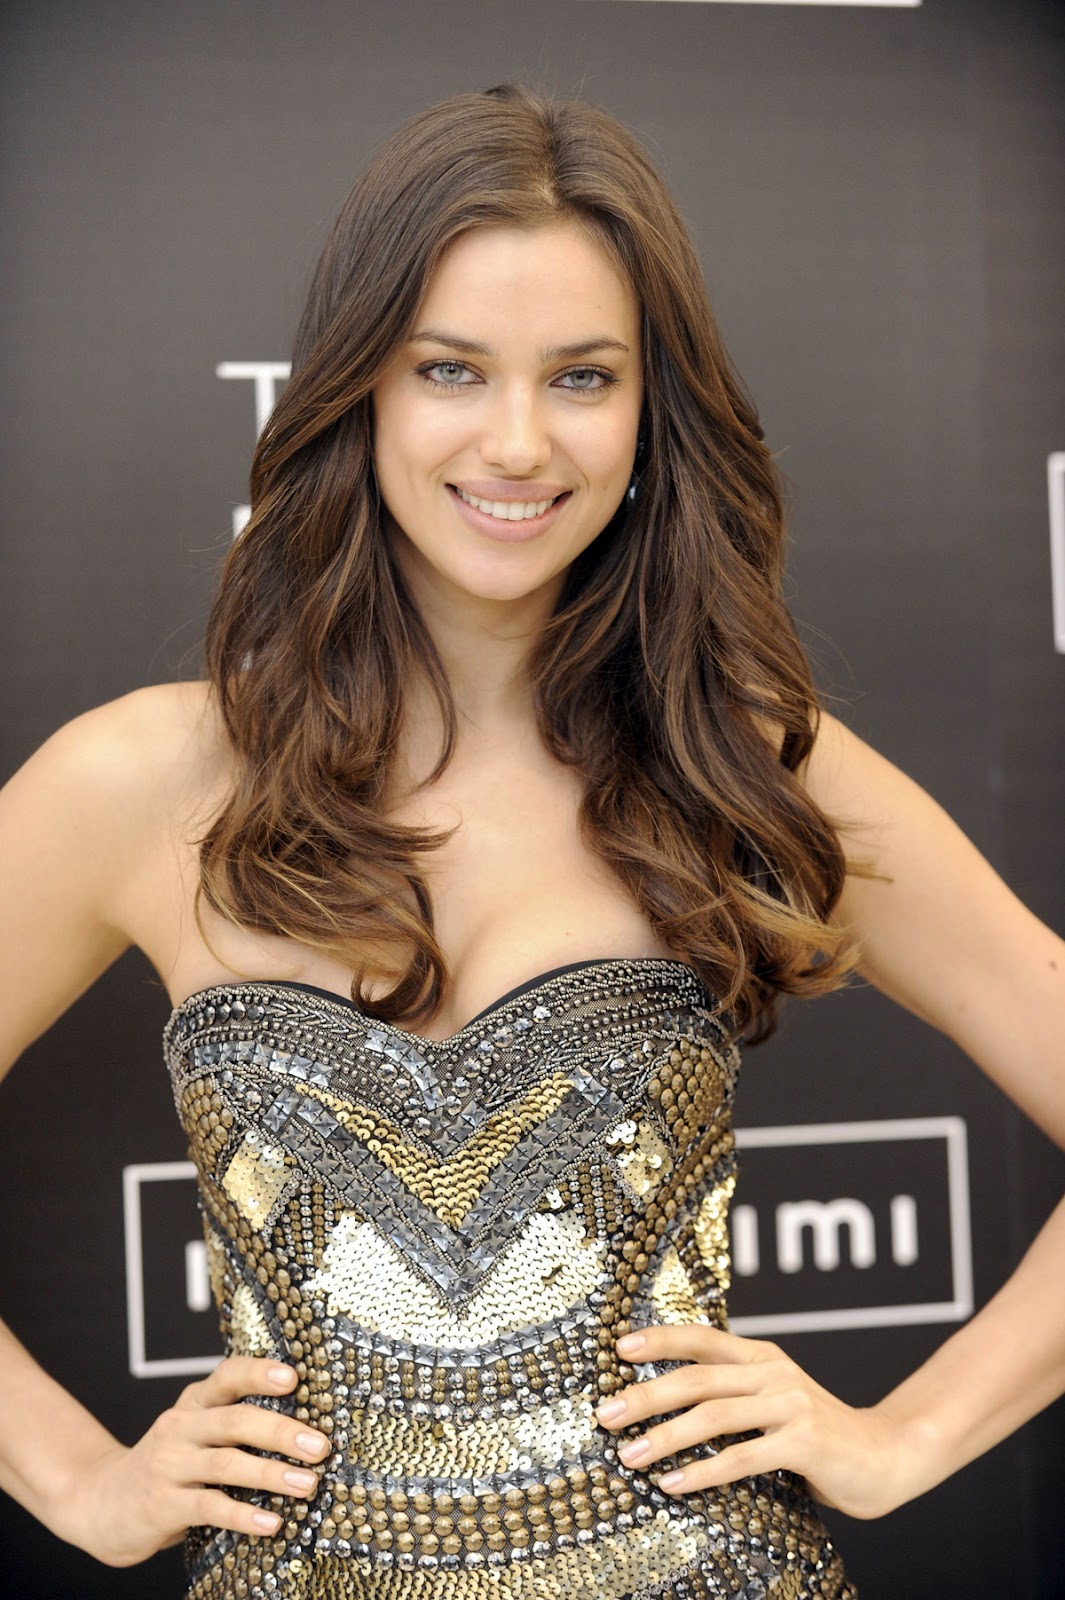 http://2.bp.blogspot.com/-j5fOlHbwp44/T5FXWWw6ewI/AAAAAAAABIM/UmQdnXo81K8/s1600/IRINA-SHAYK-The-Perfect-Bra-by-Intimissimi-Promotion-Madrid-00.jpg